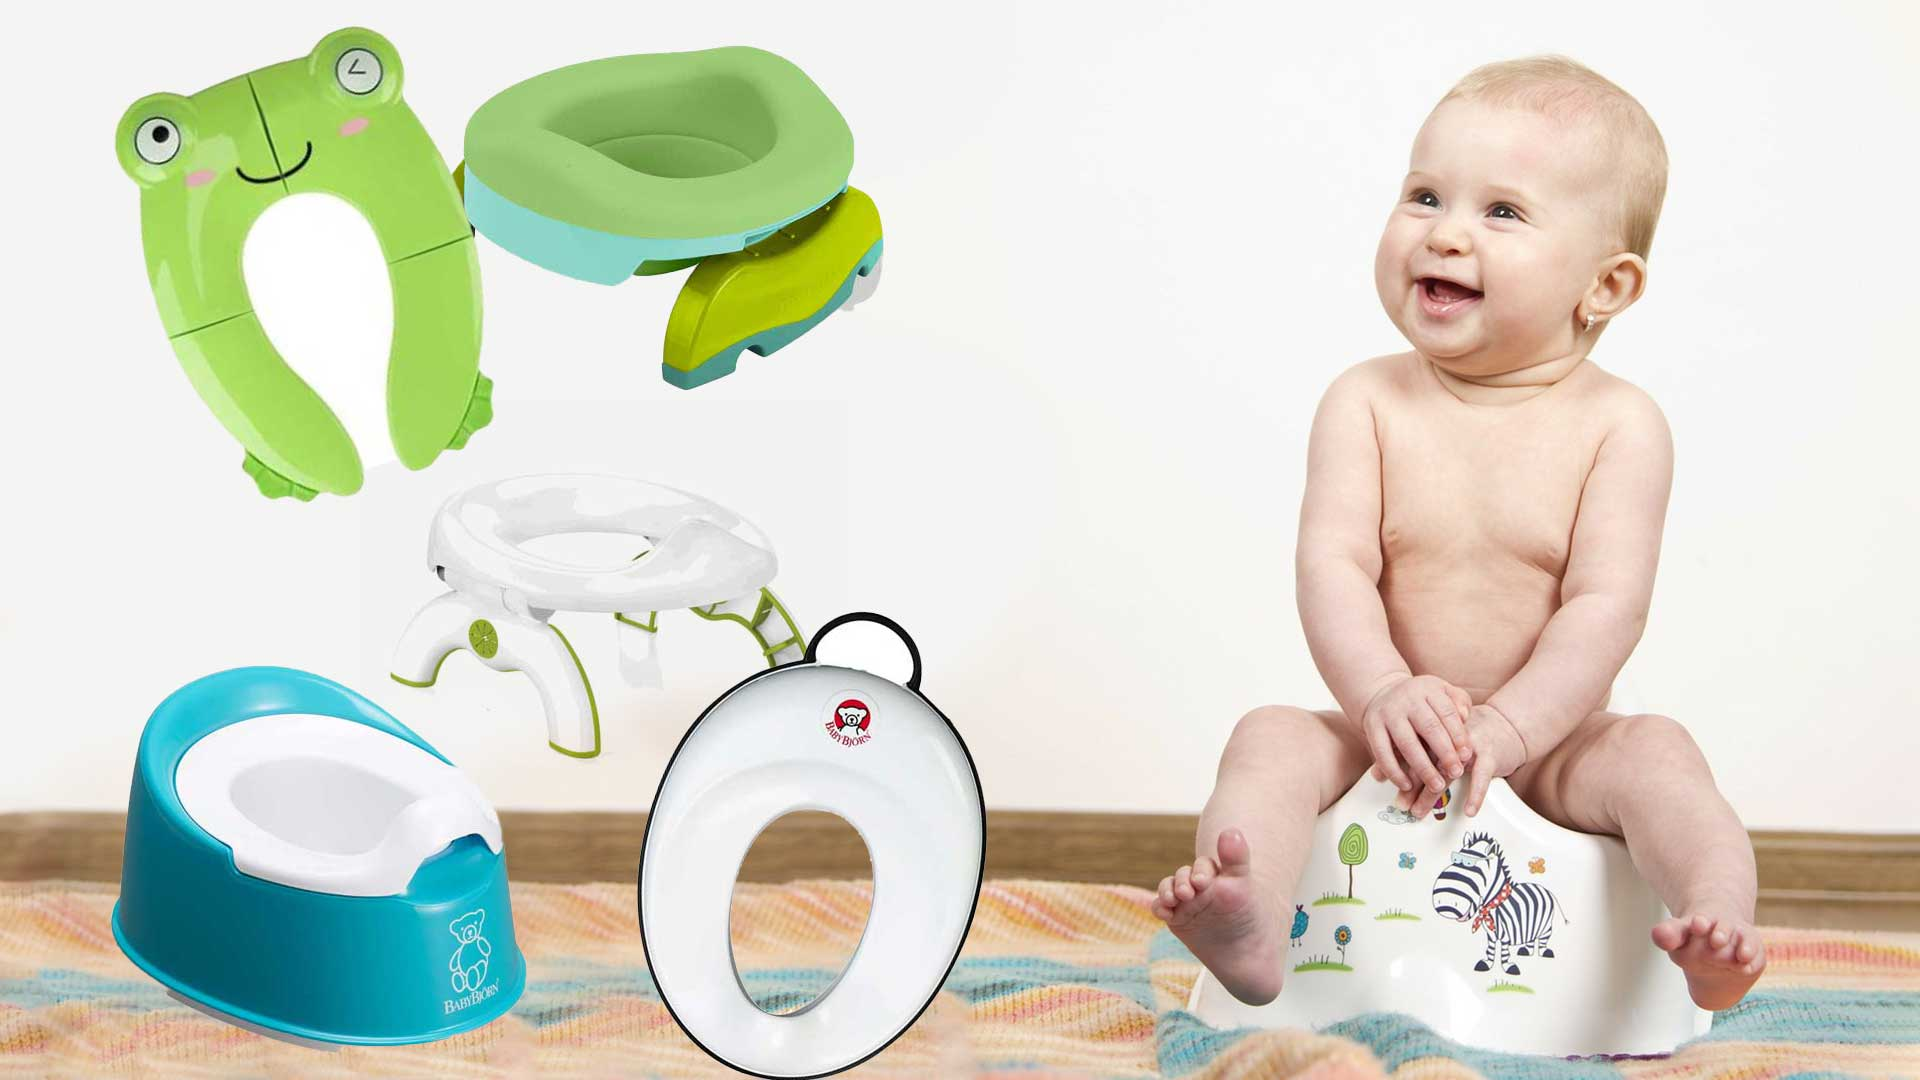 The Best Potty For Travel: The #1 Way To Be Handle #2 IN 2021